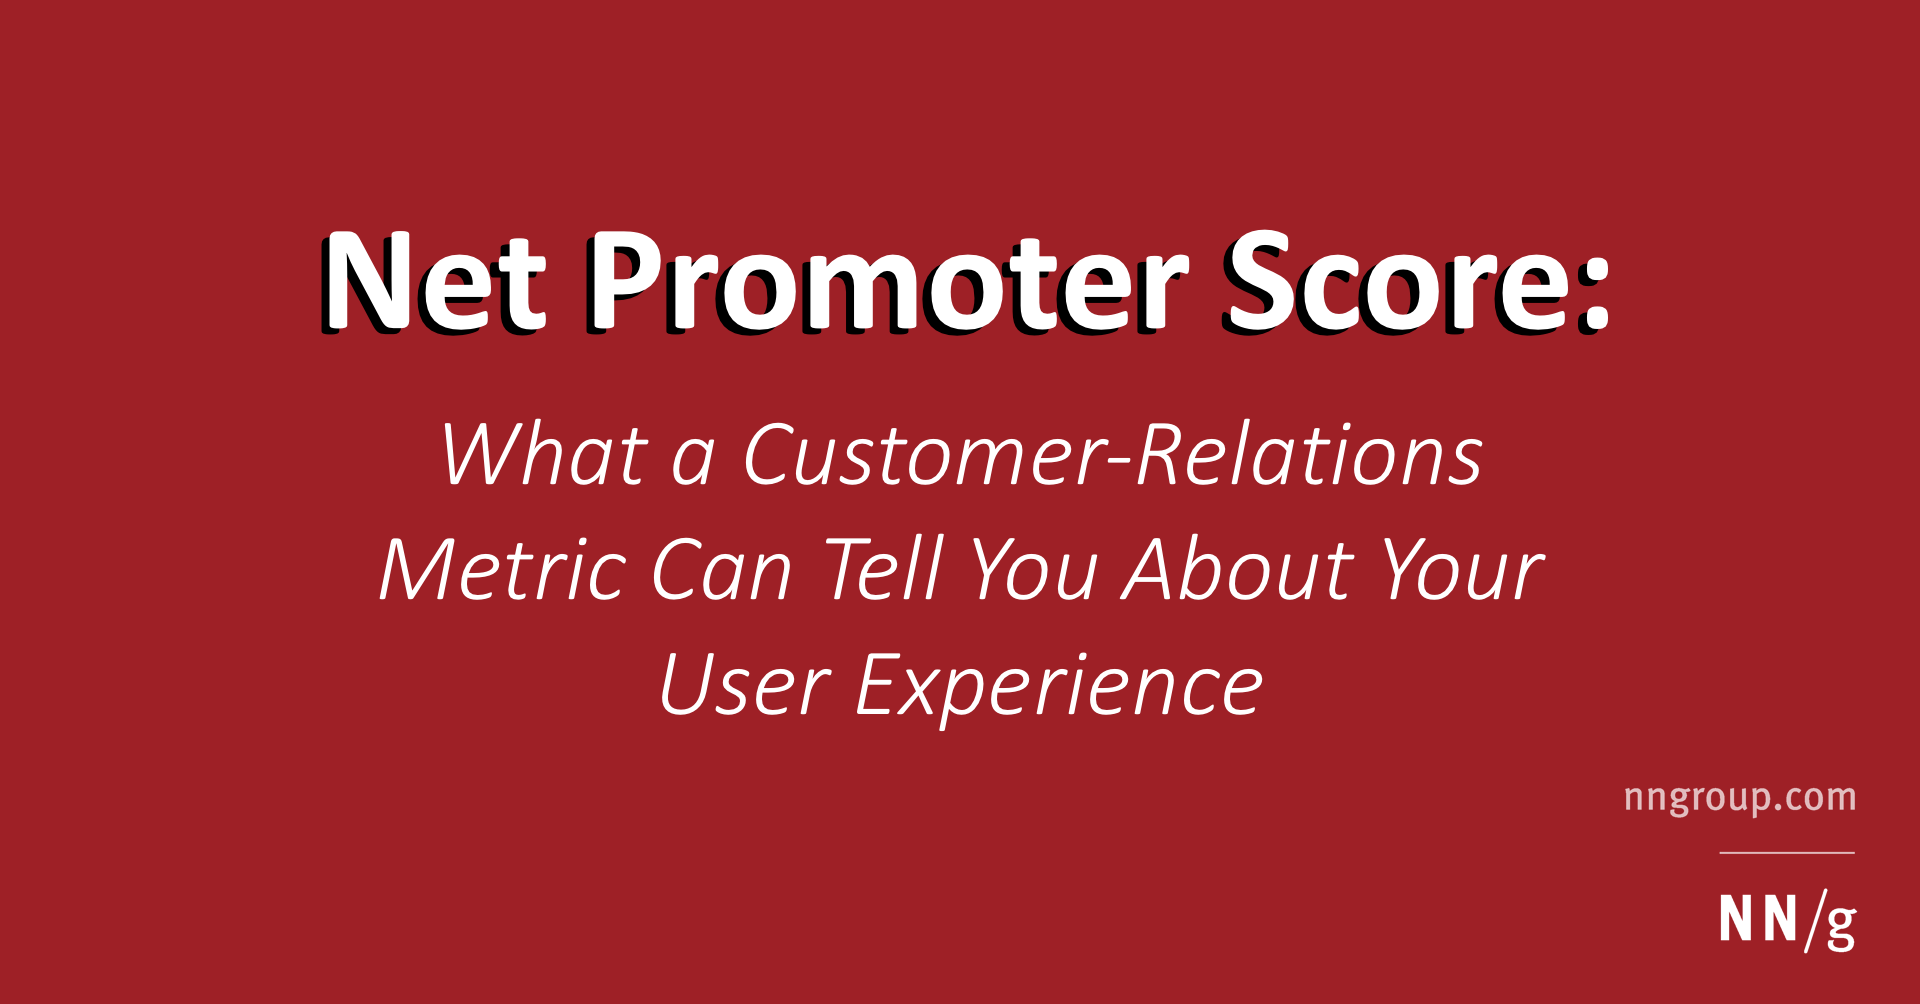 Net Promoter Score: What a Customer-Relations Metric Can Tell You